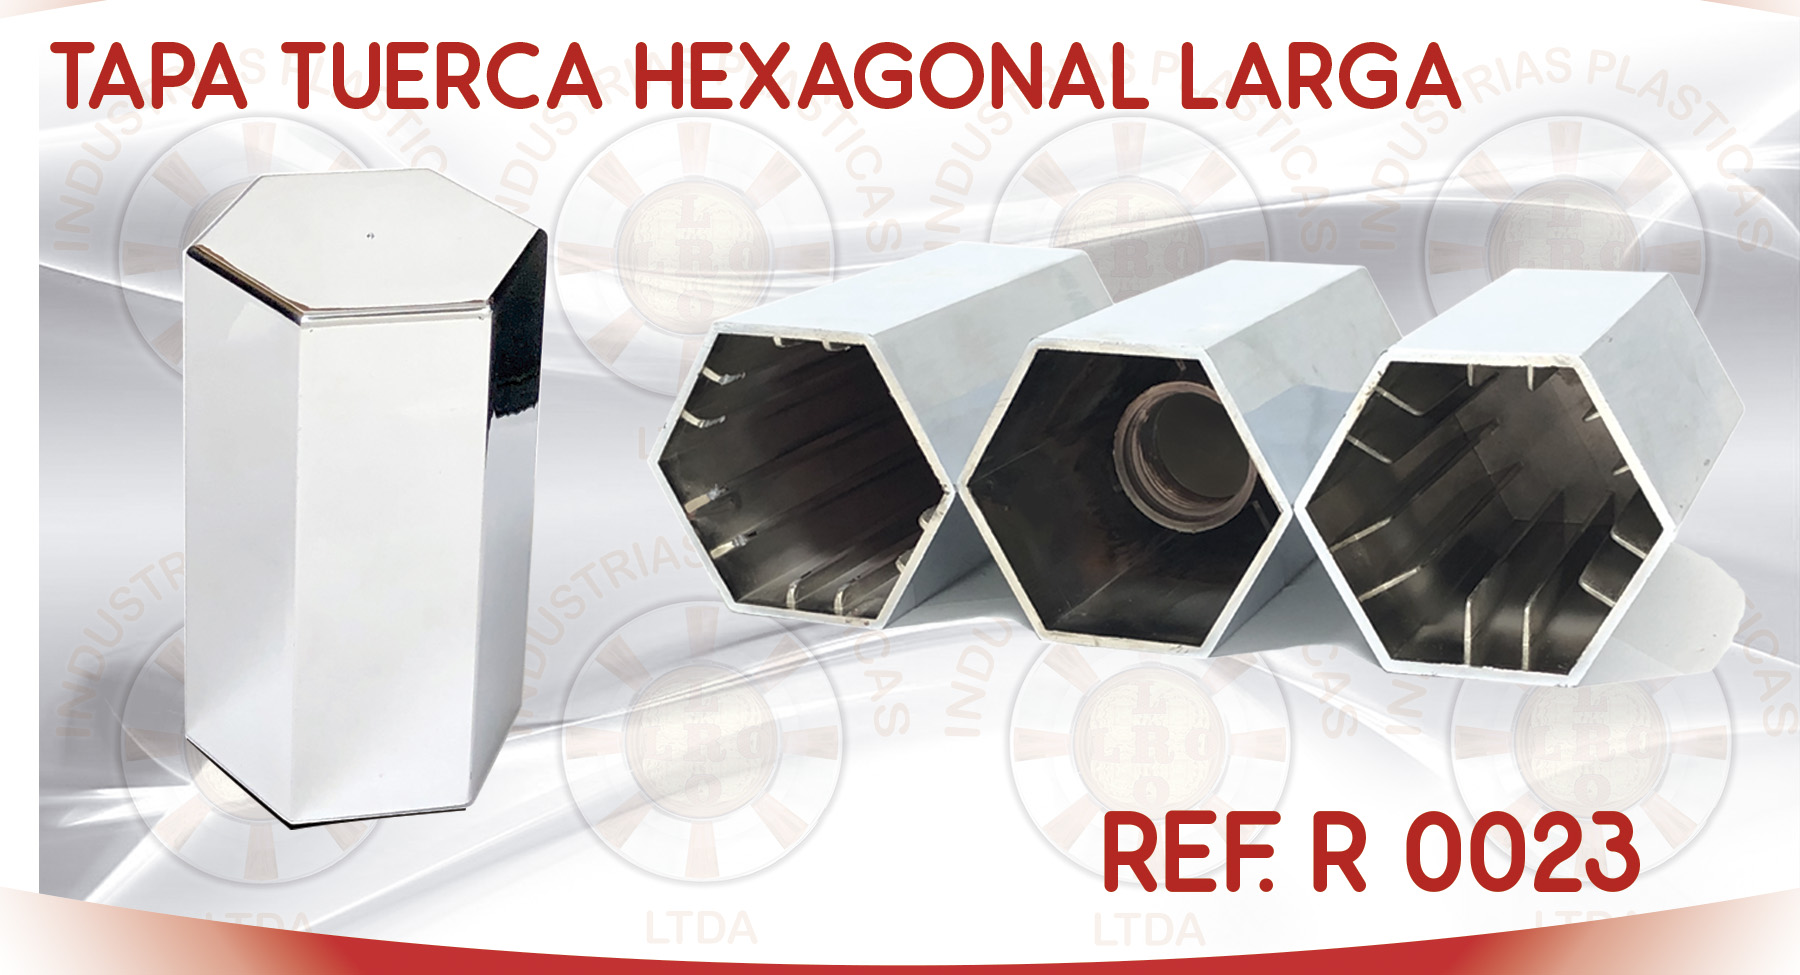 R 0023 TAPA TUERCA HEXAGONAL LARGA